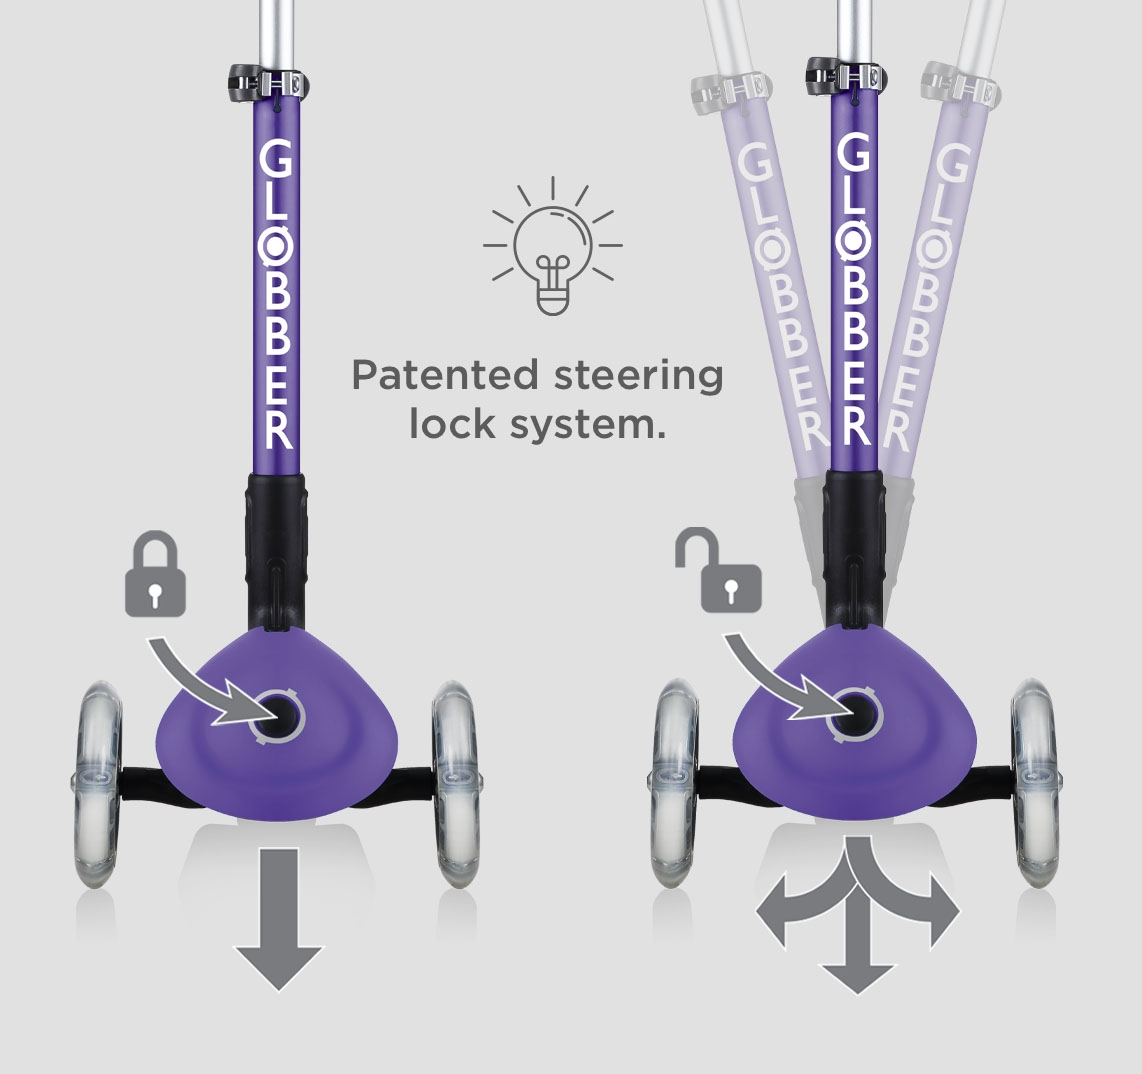 safe 3 wheel toddler scooters for 2 year olds with patented steering lock button - Globber JUNIOR